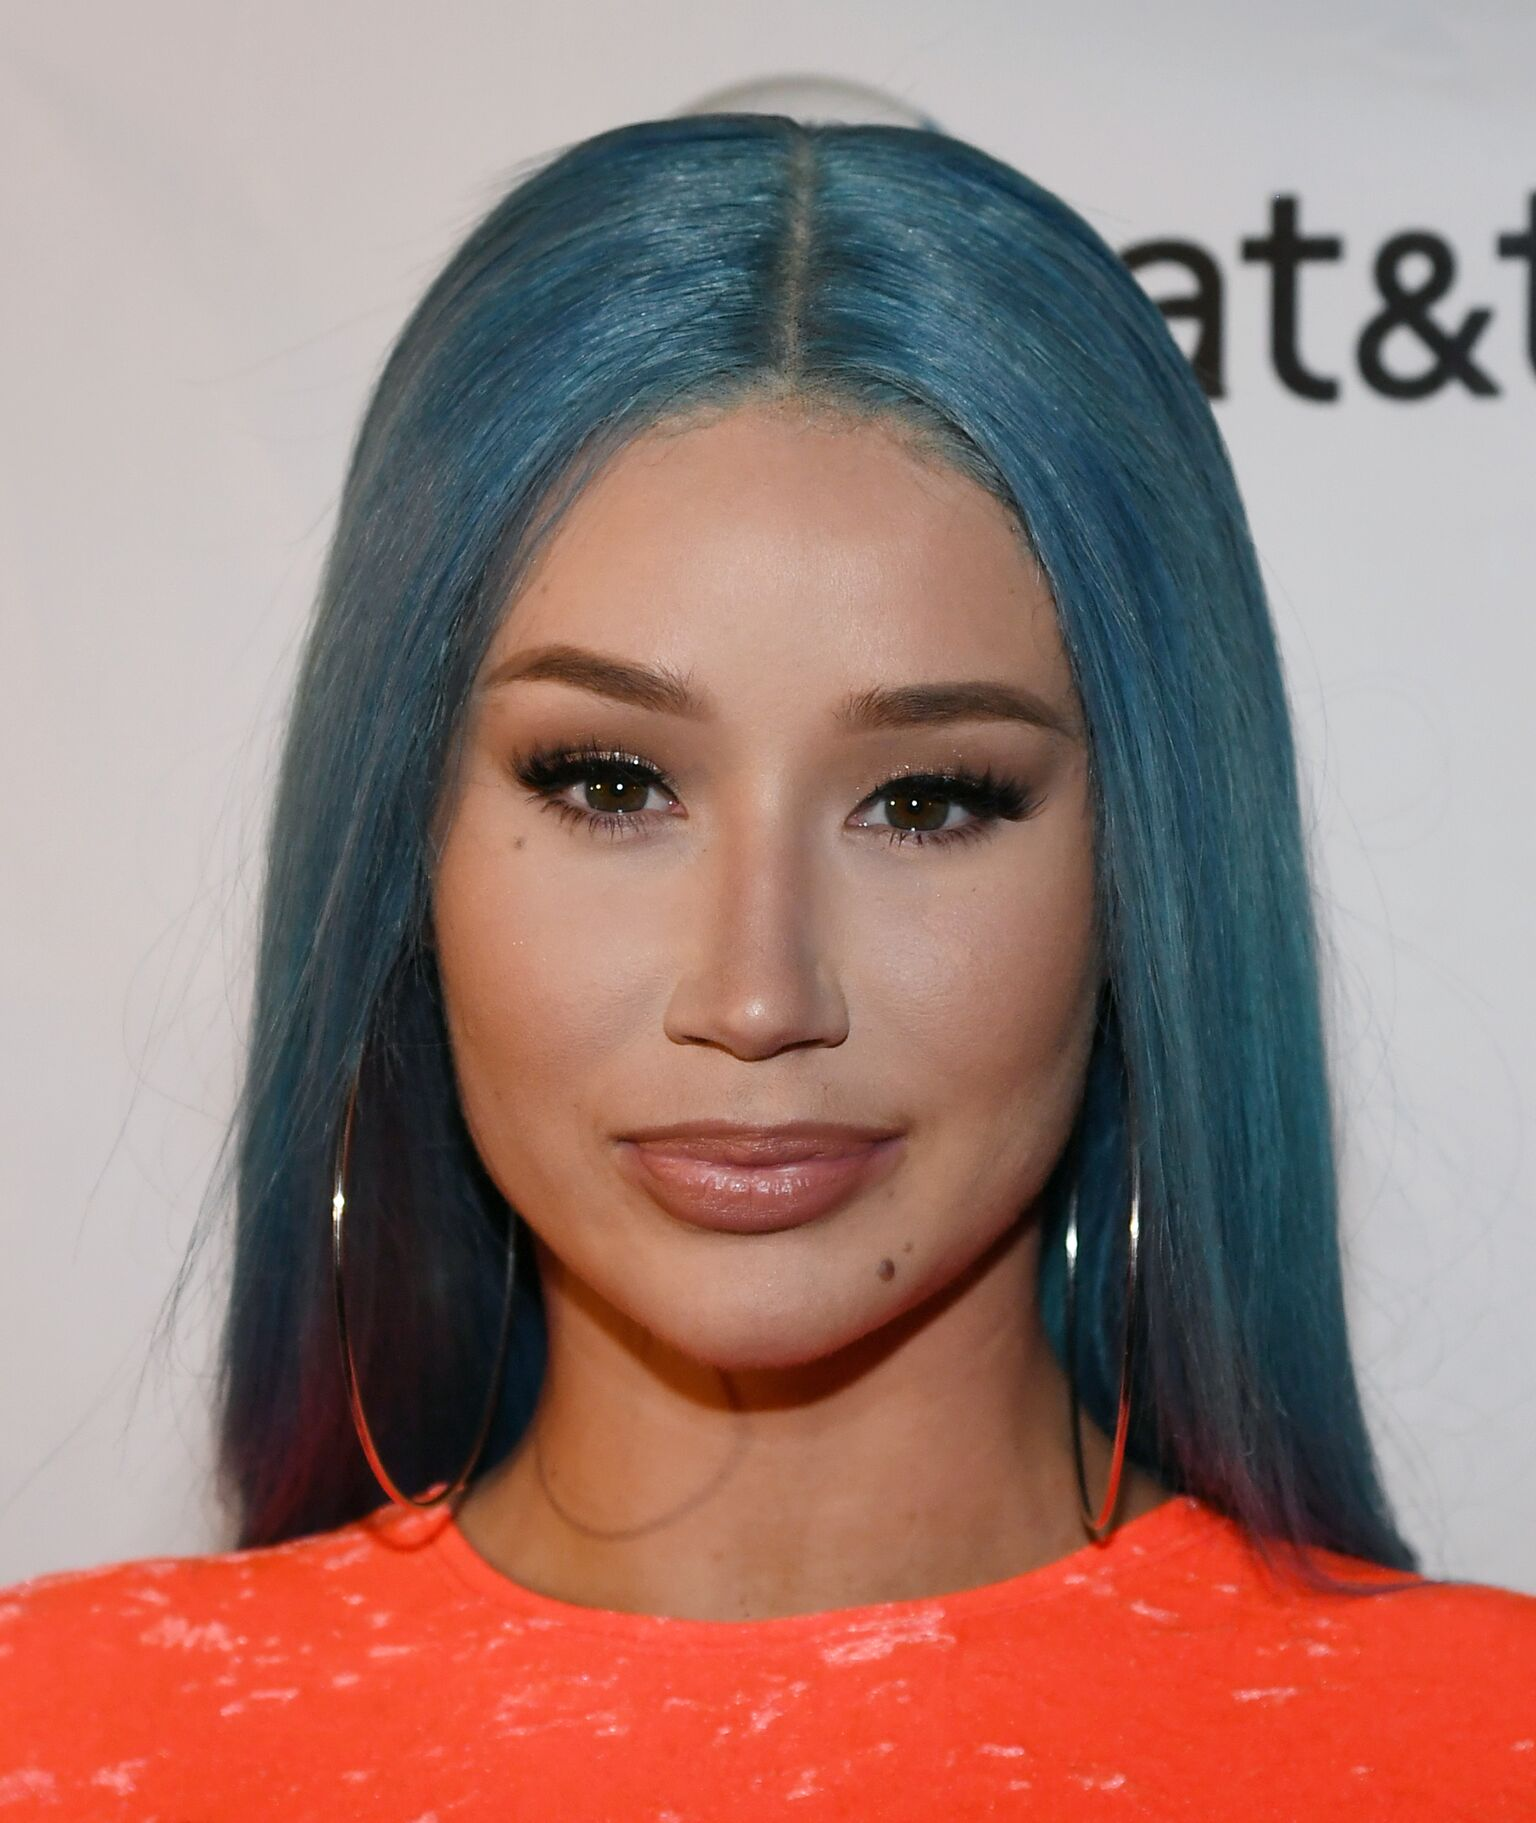 Iggy Azalea attends the WNBA All-Star Game 2019 beach concert at the Mandalay Bay Beach | Getty Images